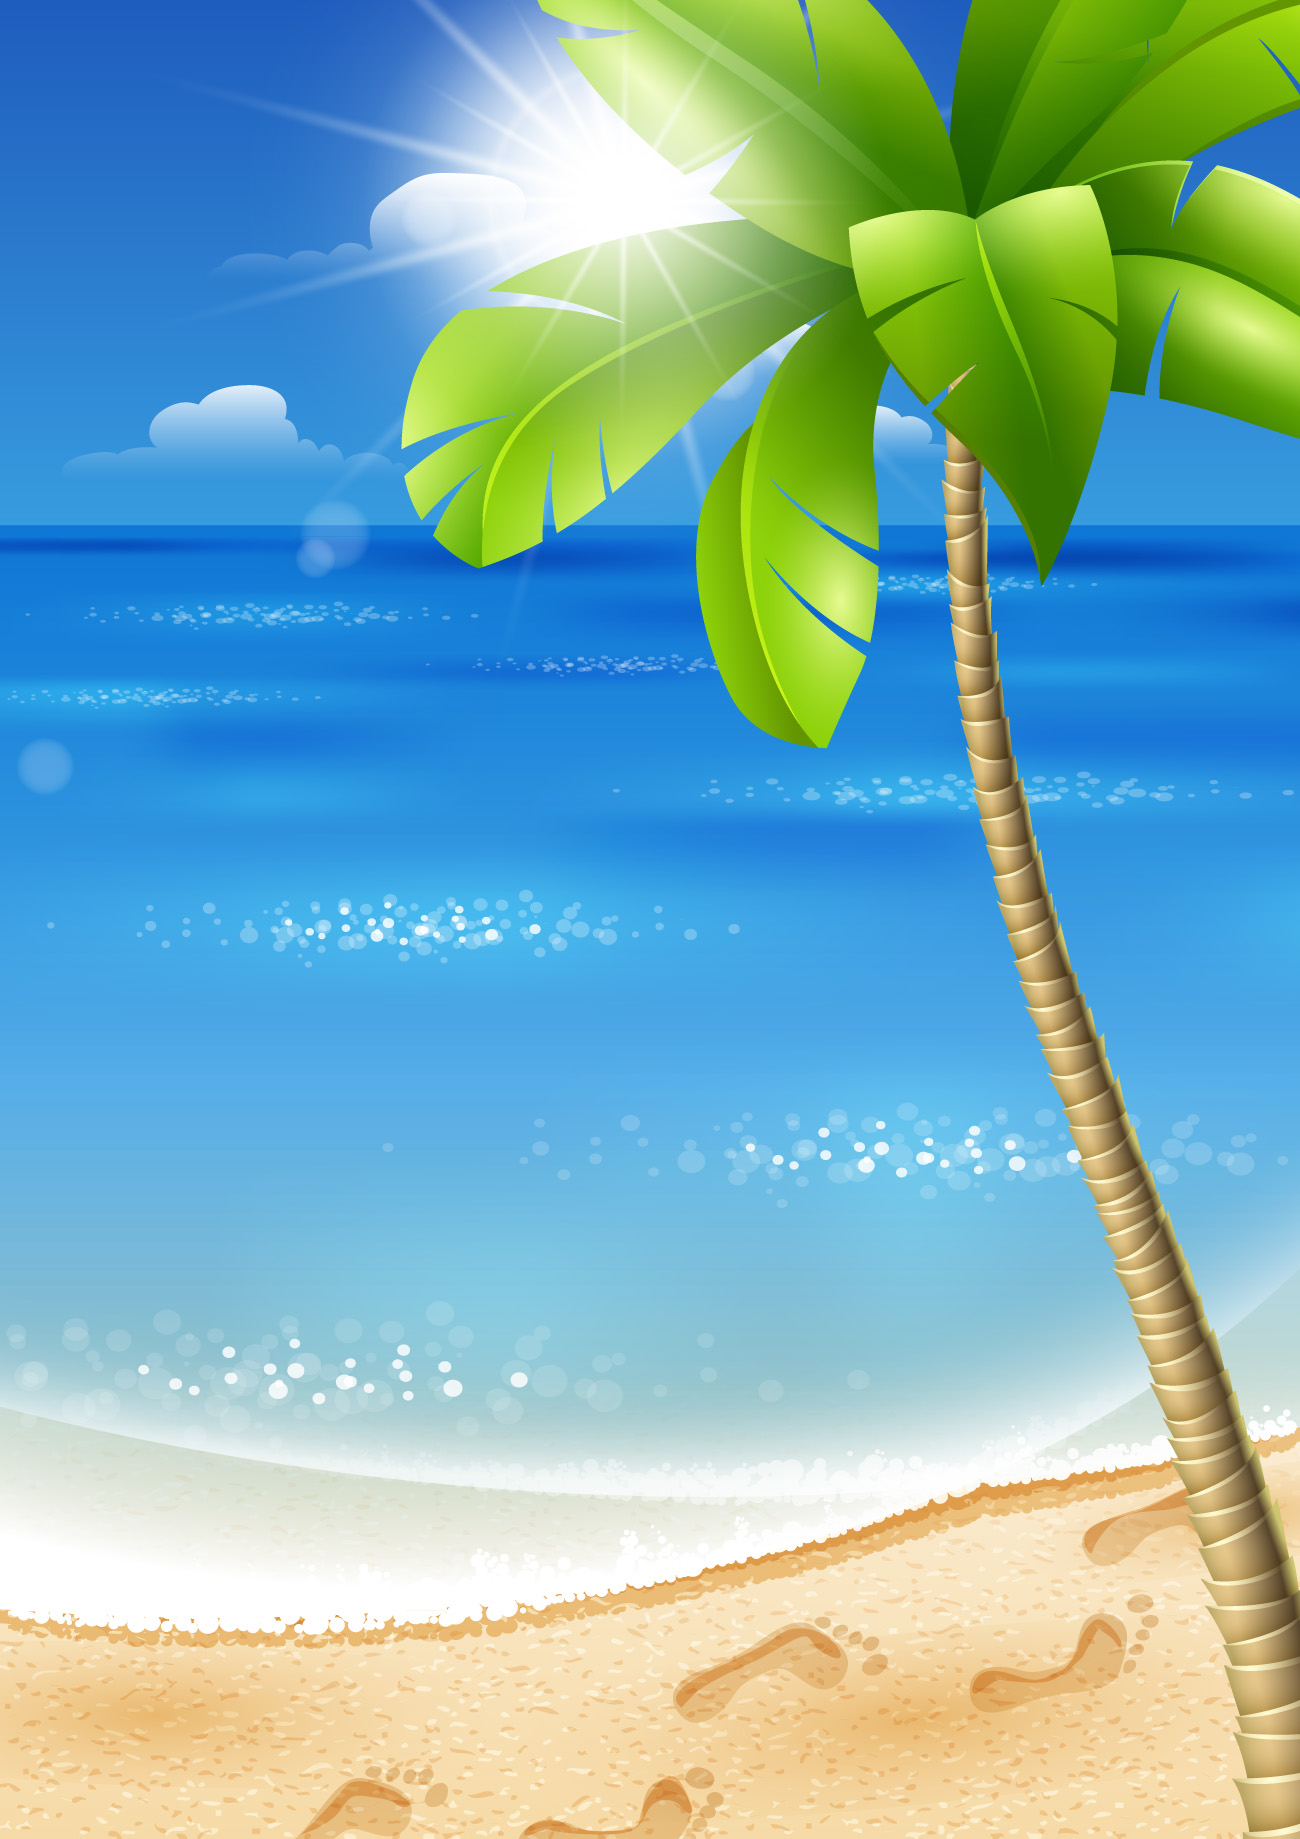 Beautiful Tropical Backgrounds vector 02